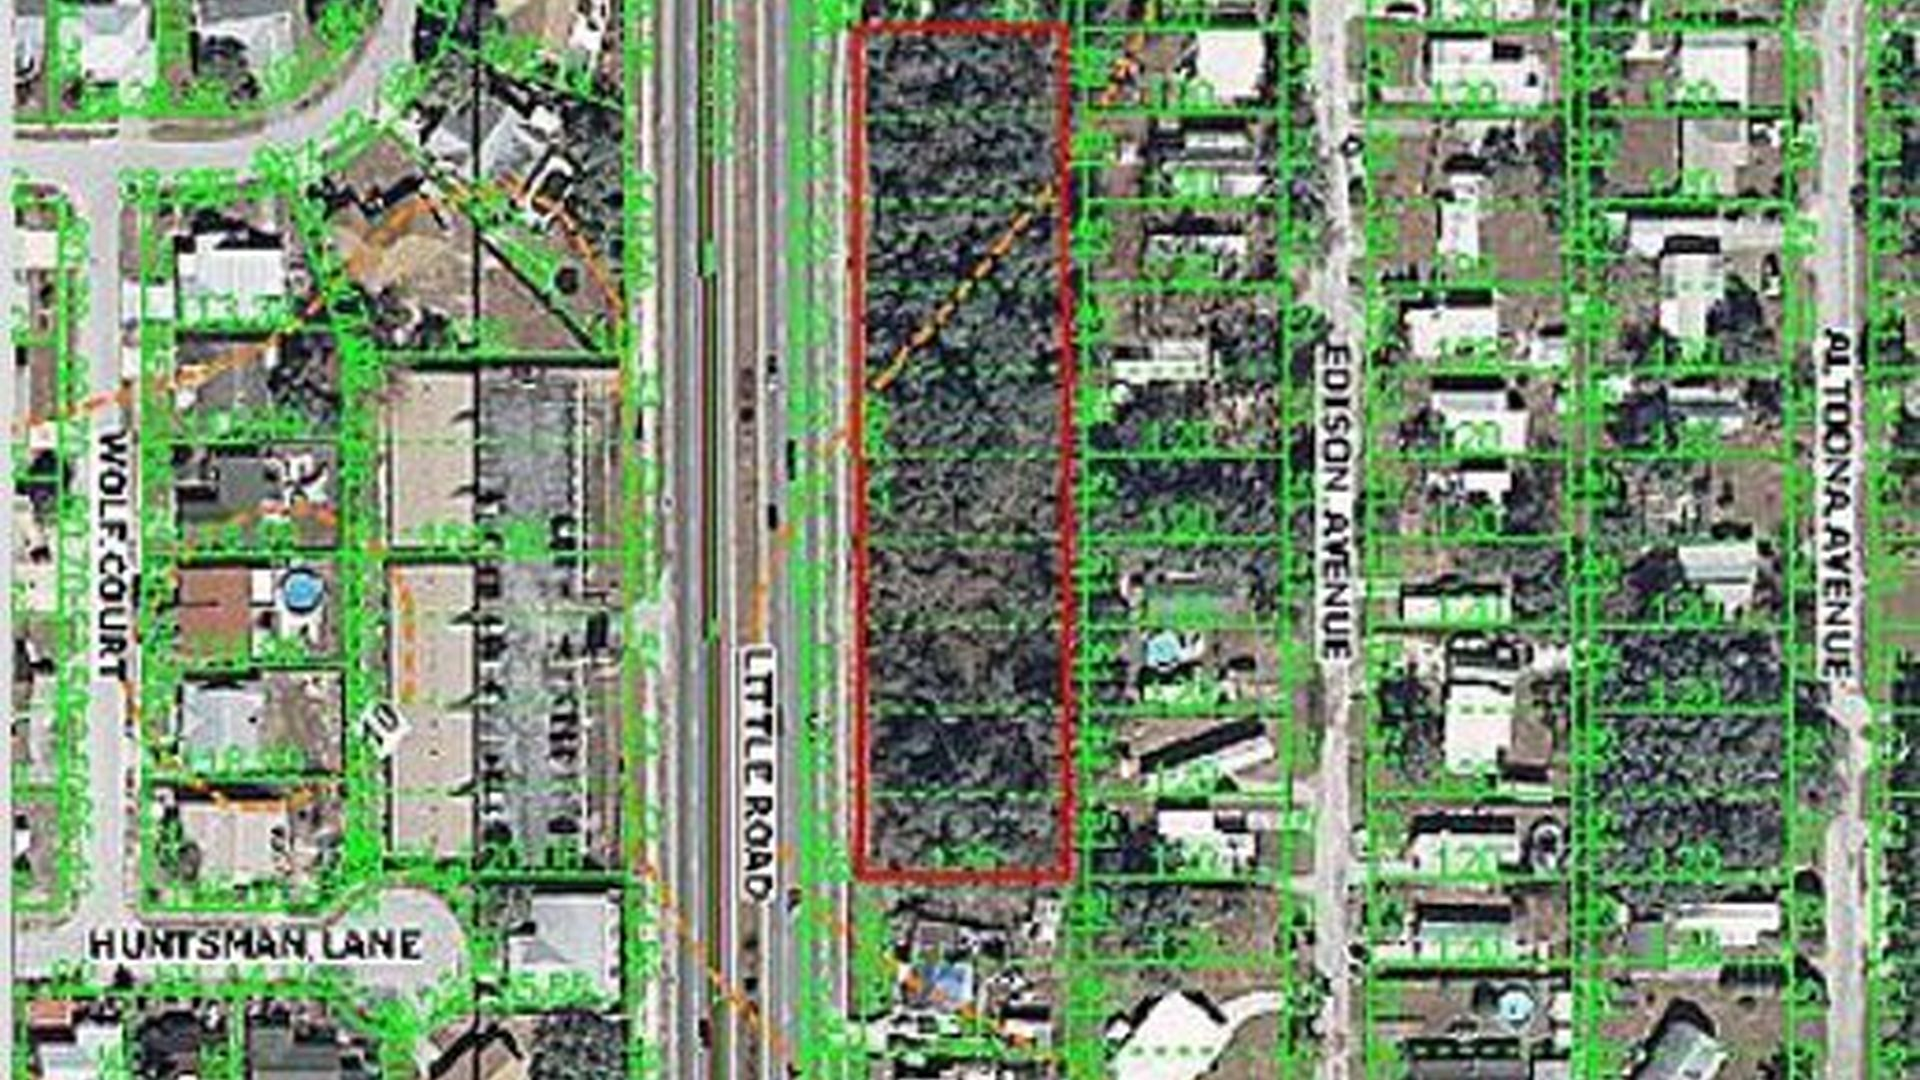 Pasco County FL For Sale by Owner (FSBO) - 269 Homes | Zillow